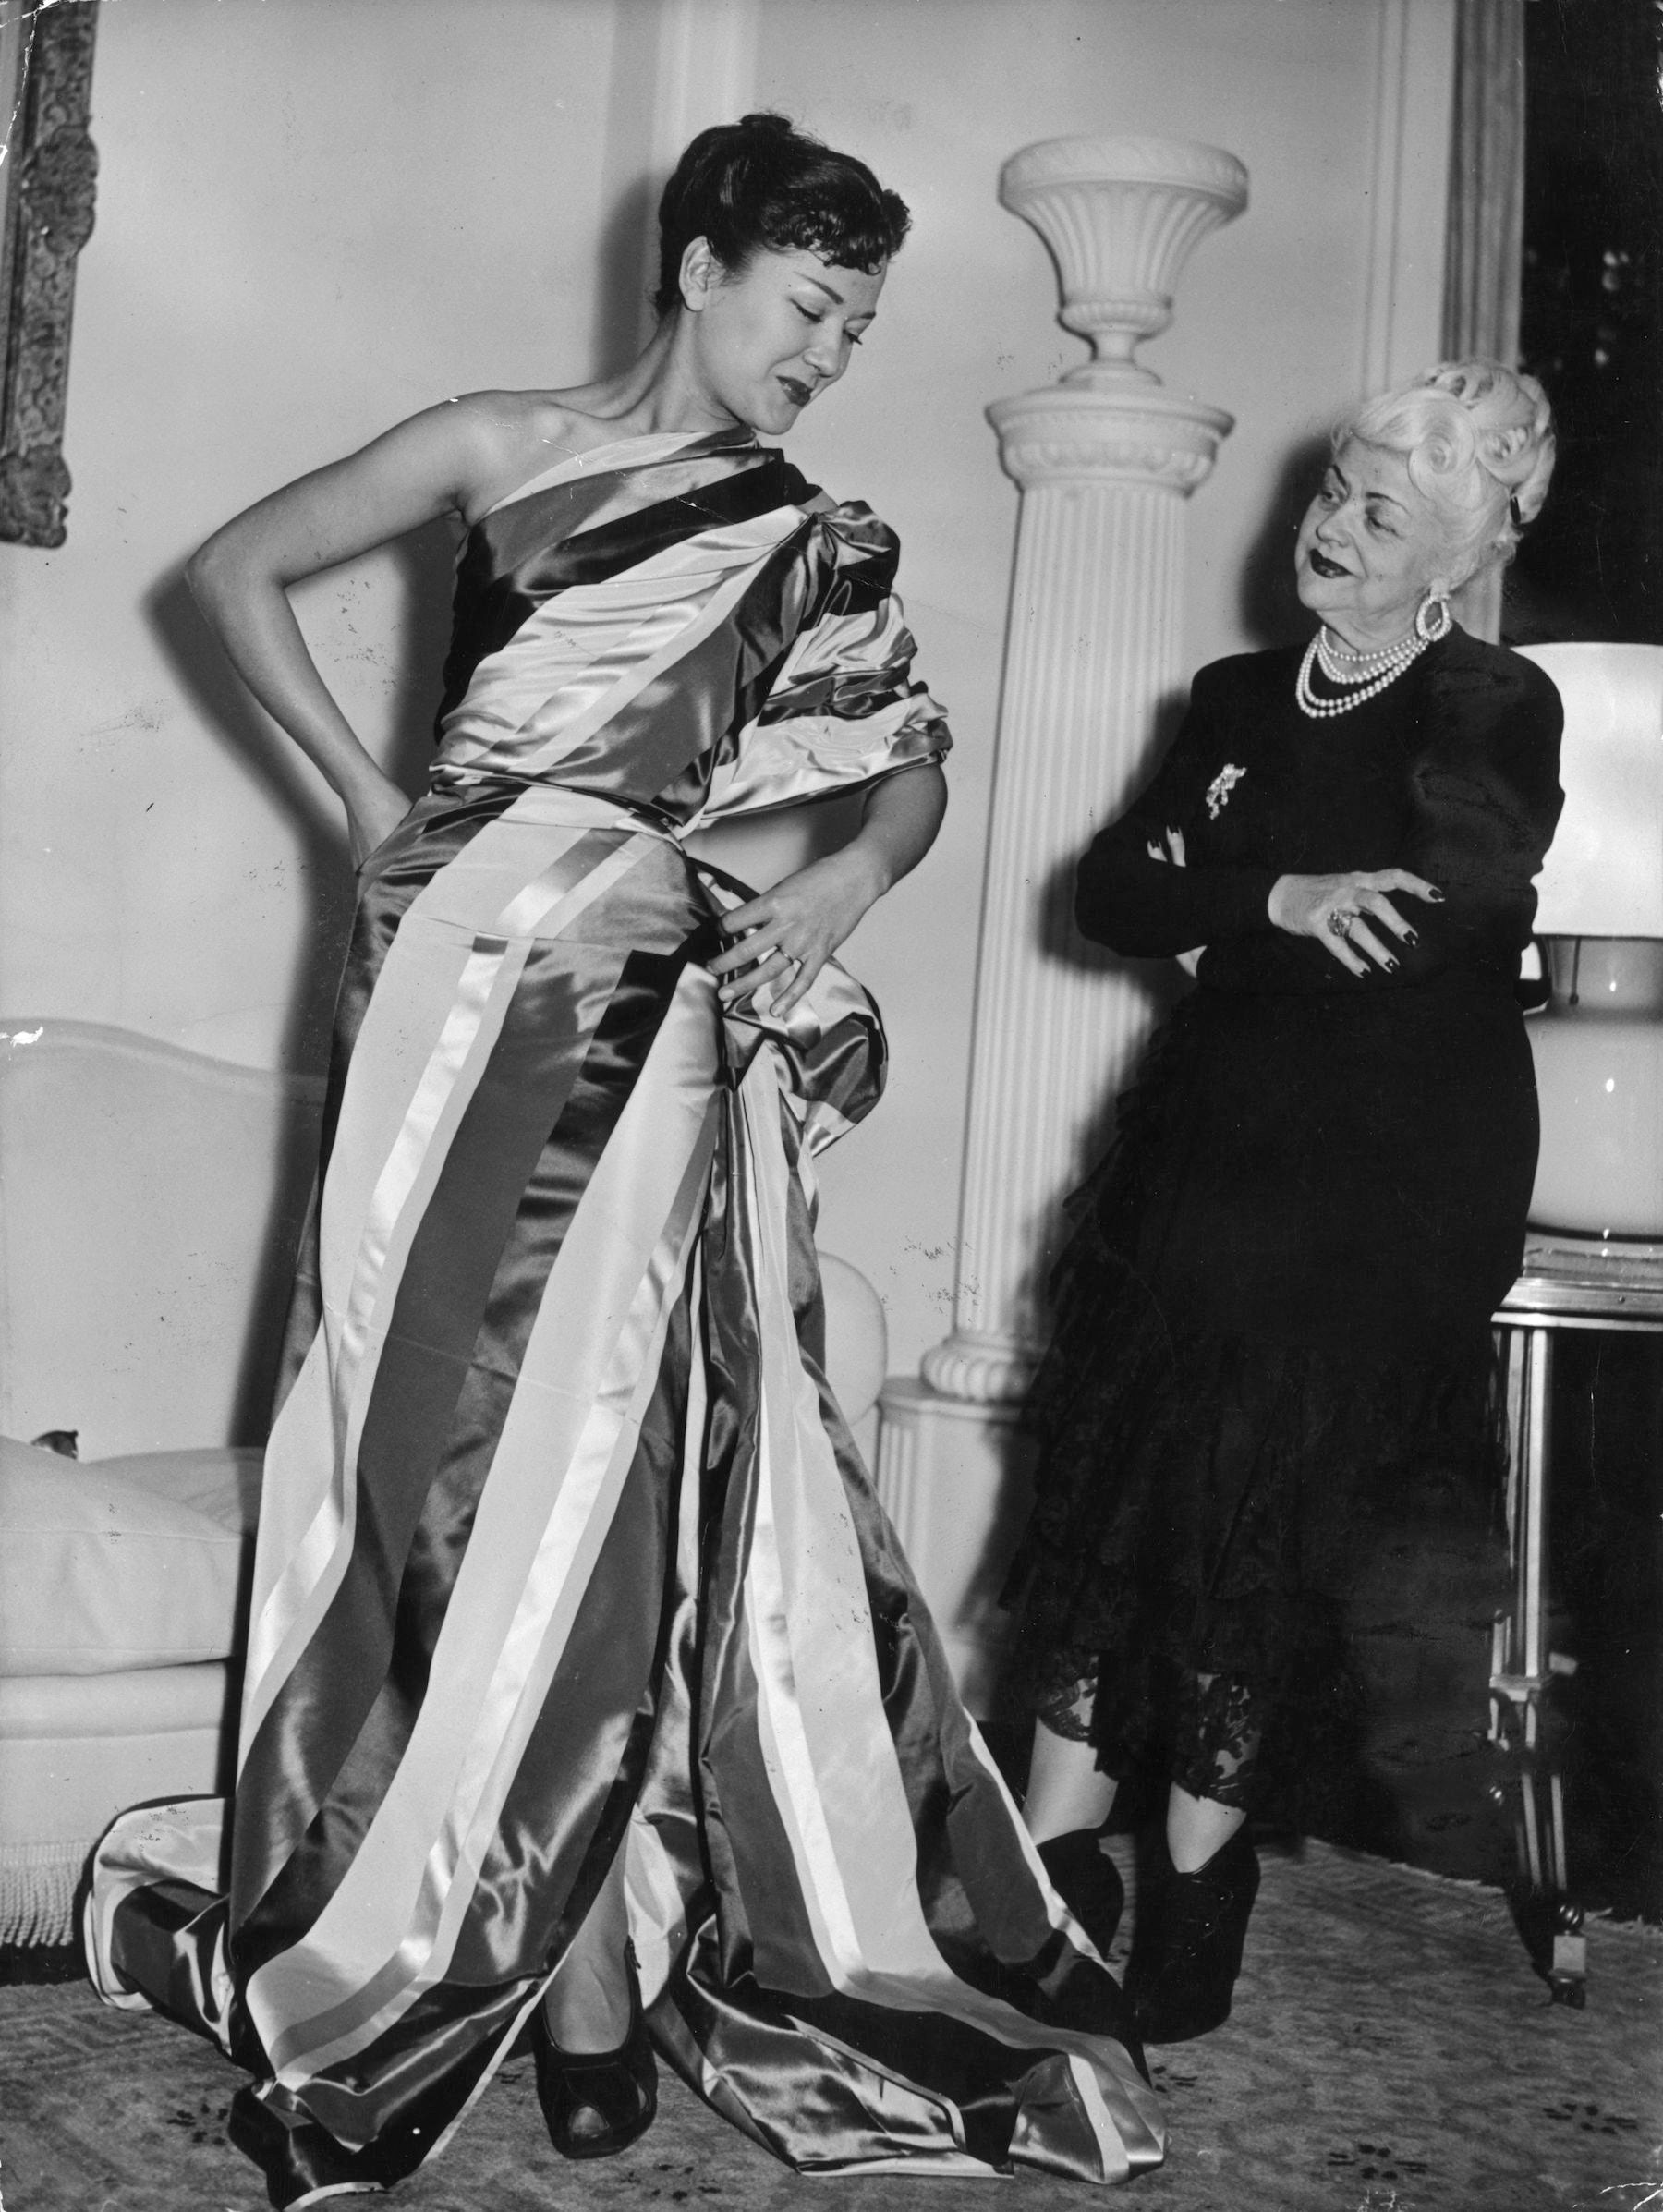 1948: Dress designer Madame Nina Ricci on the right, casting a critical eye at a mannequin whom she has draped with material to make an instant dress   Source: Getty